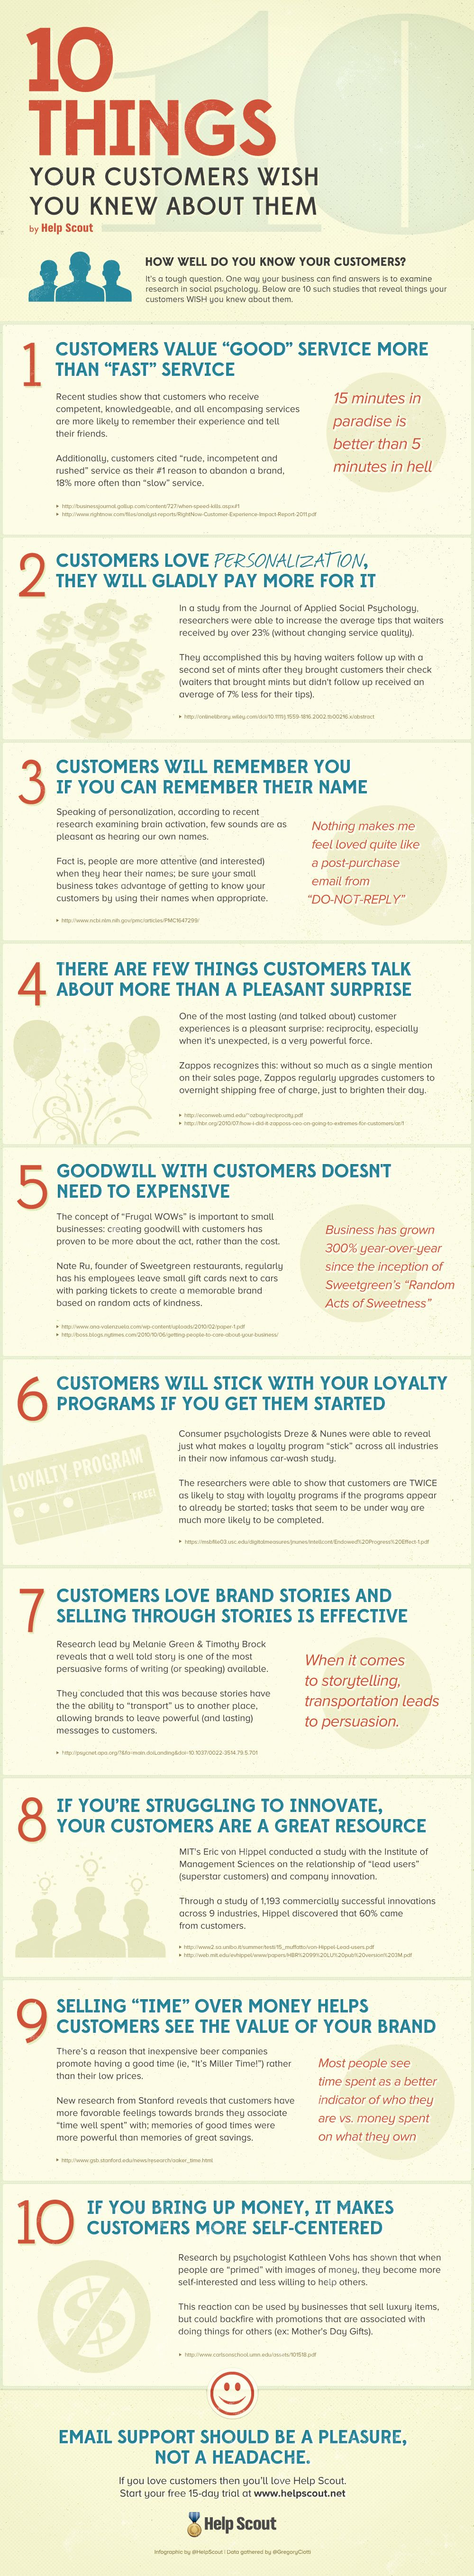 10 Things your customers wish you knew about them